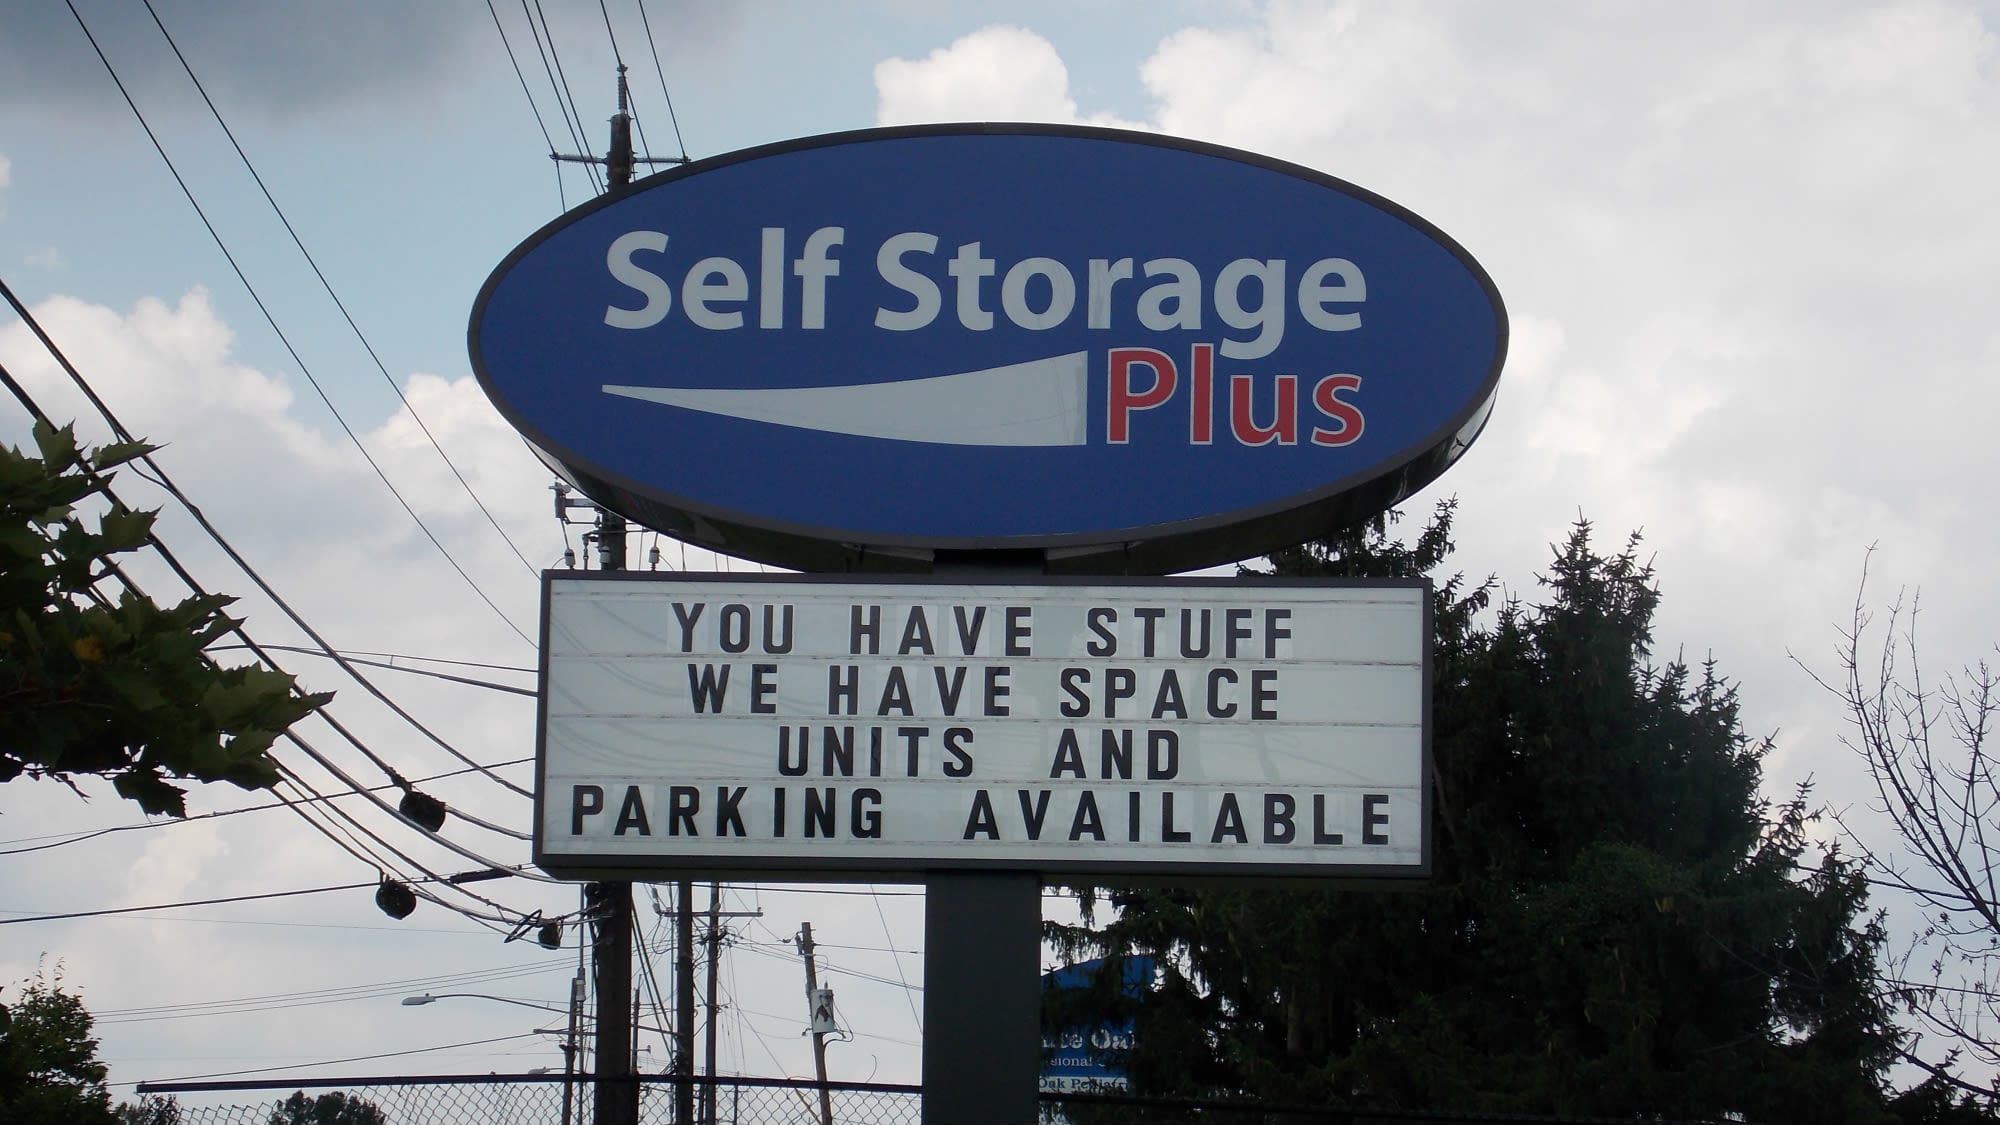 Welcome sign at Self Storage Plus in Silver Spring, MD